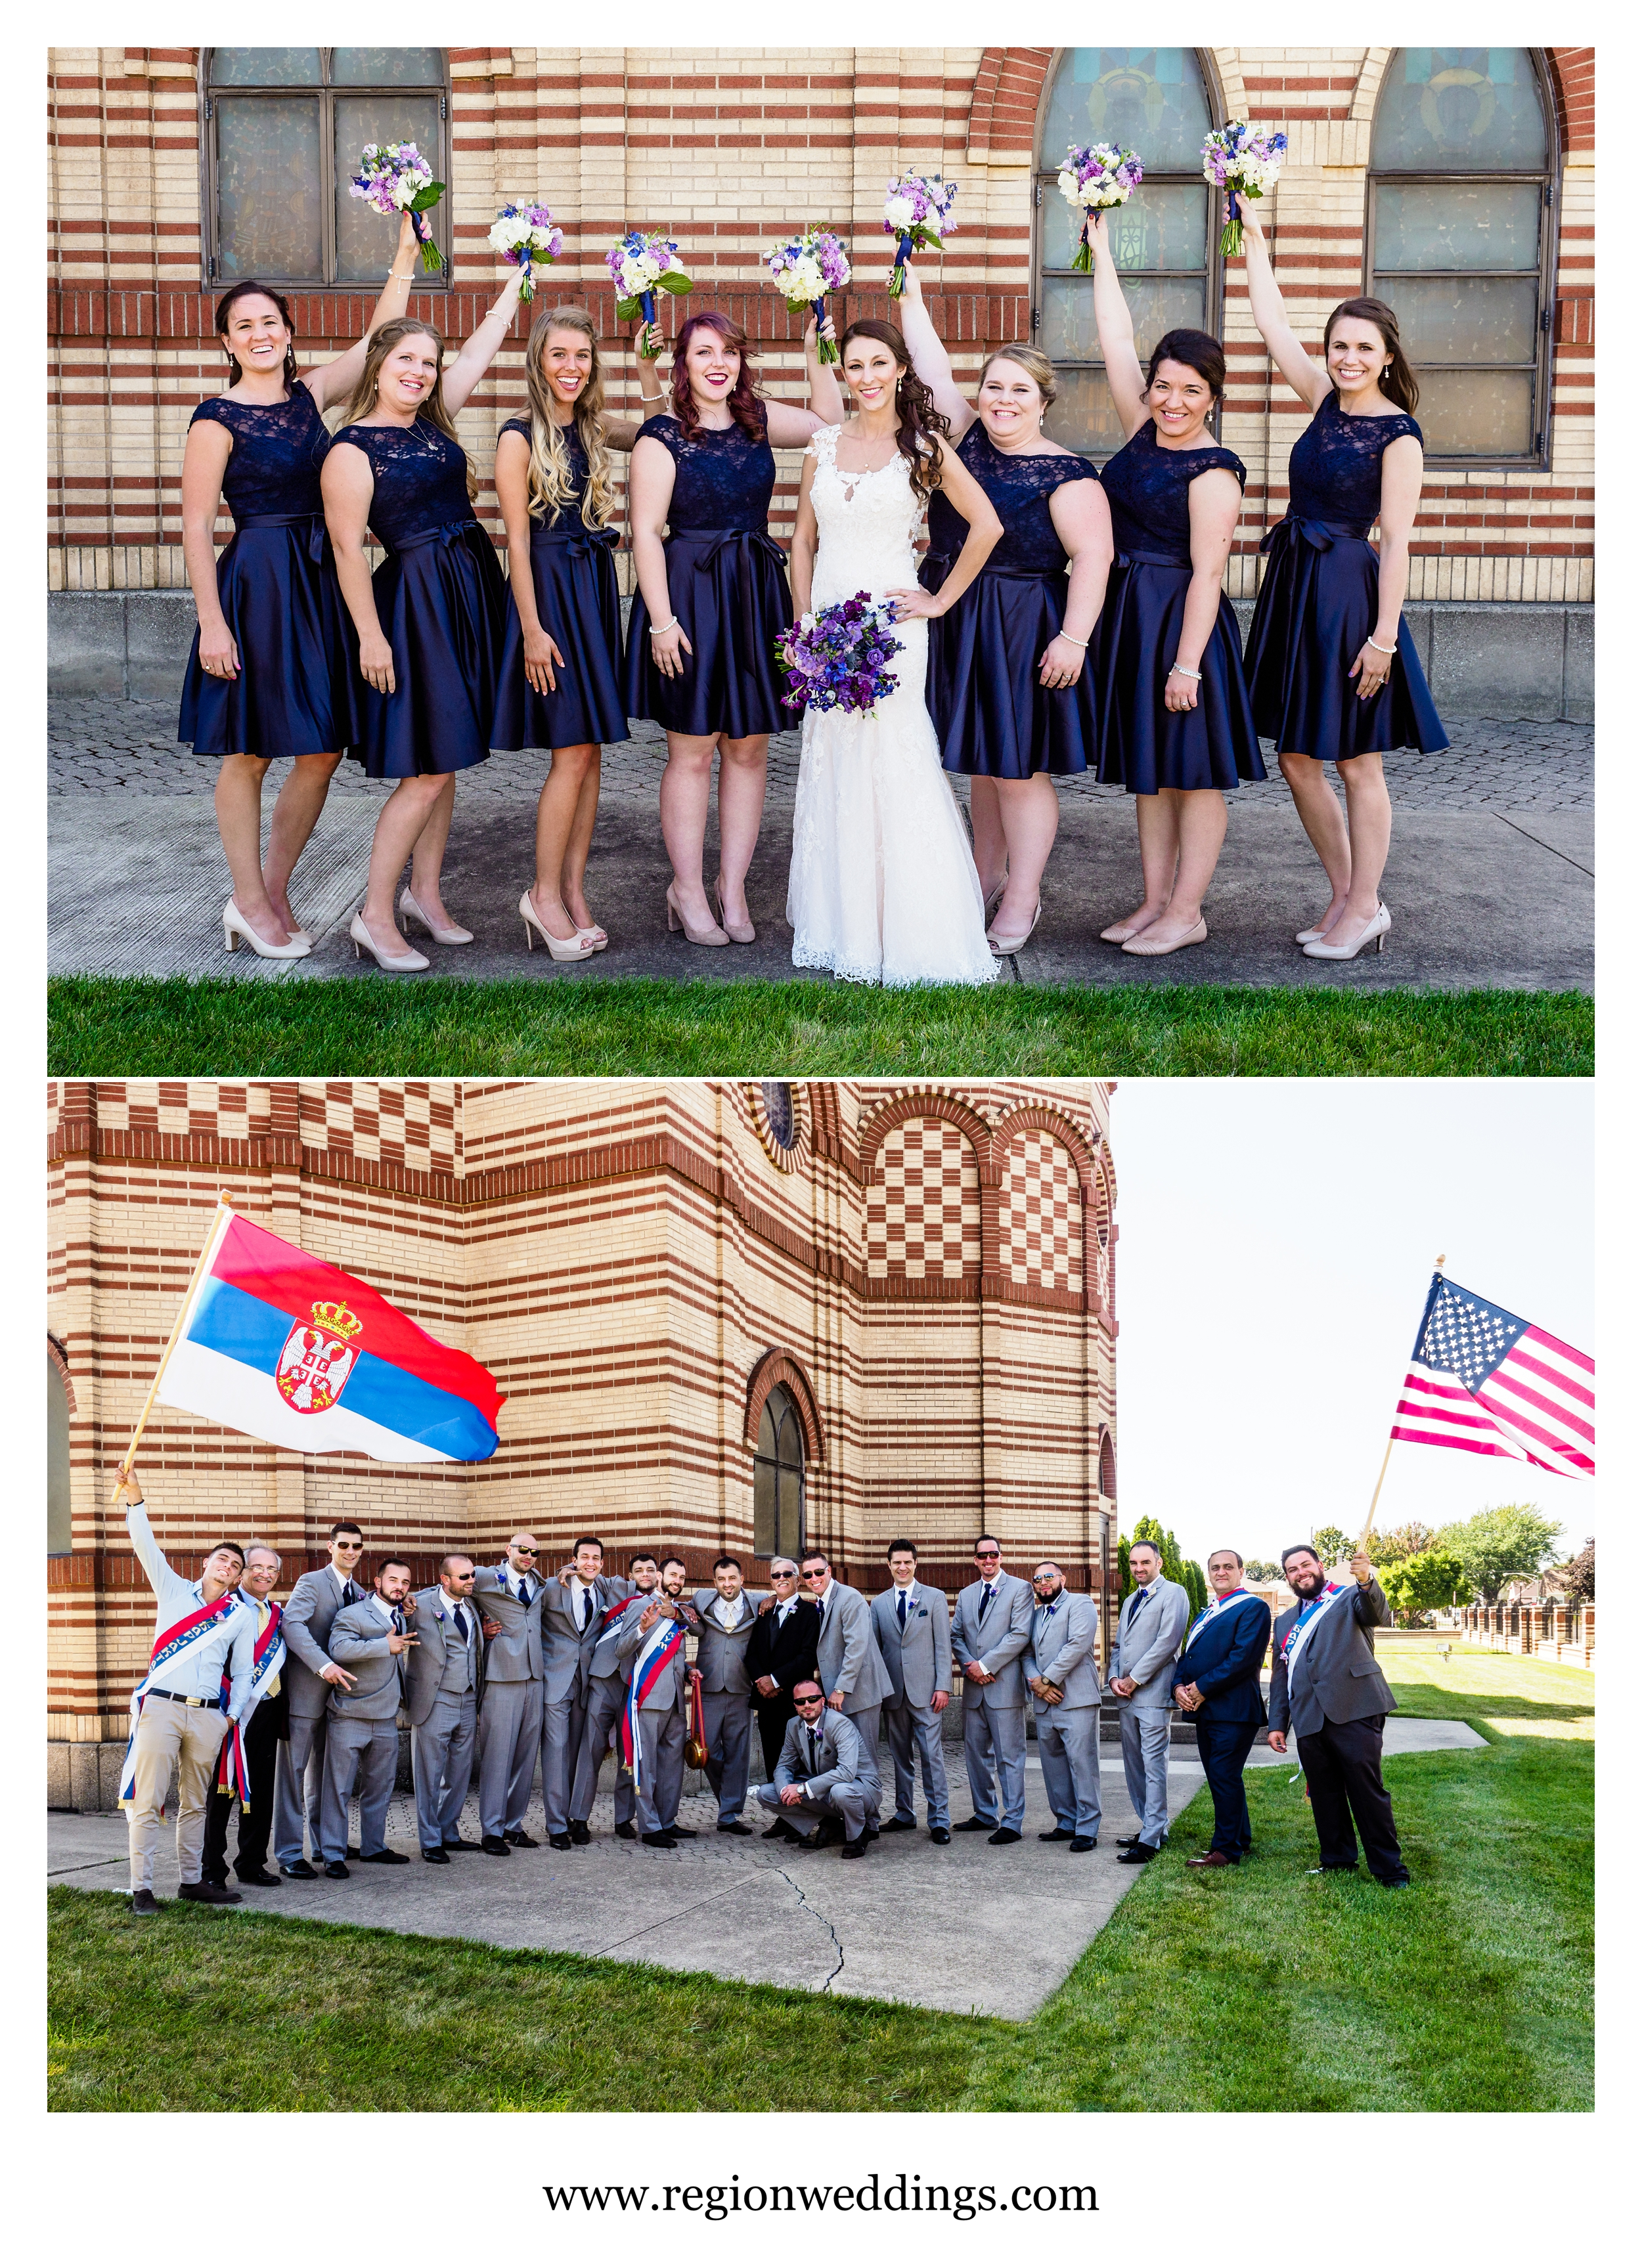 Bridesmaids and groomsmen at St. Simeon Serbian Orthodox Church in Chicago.